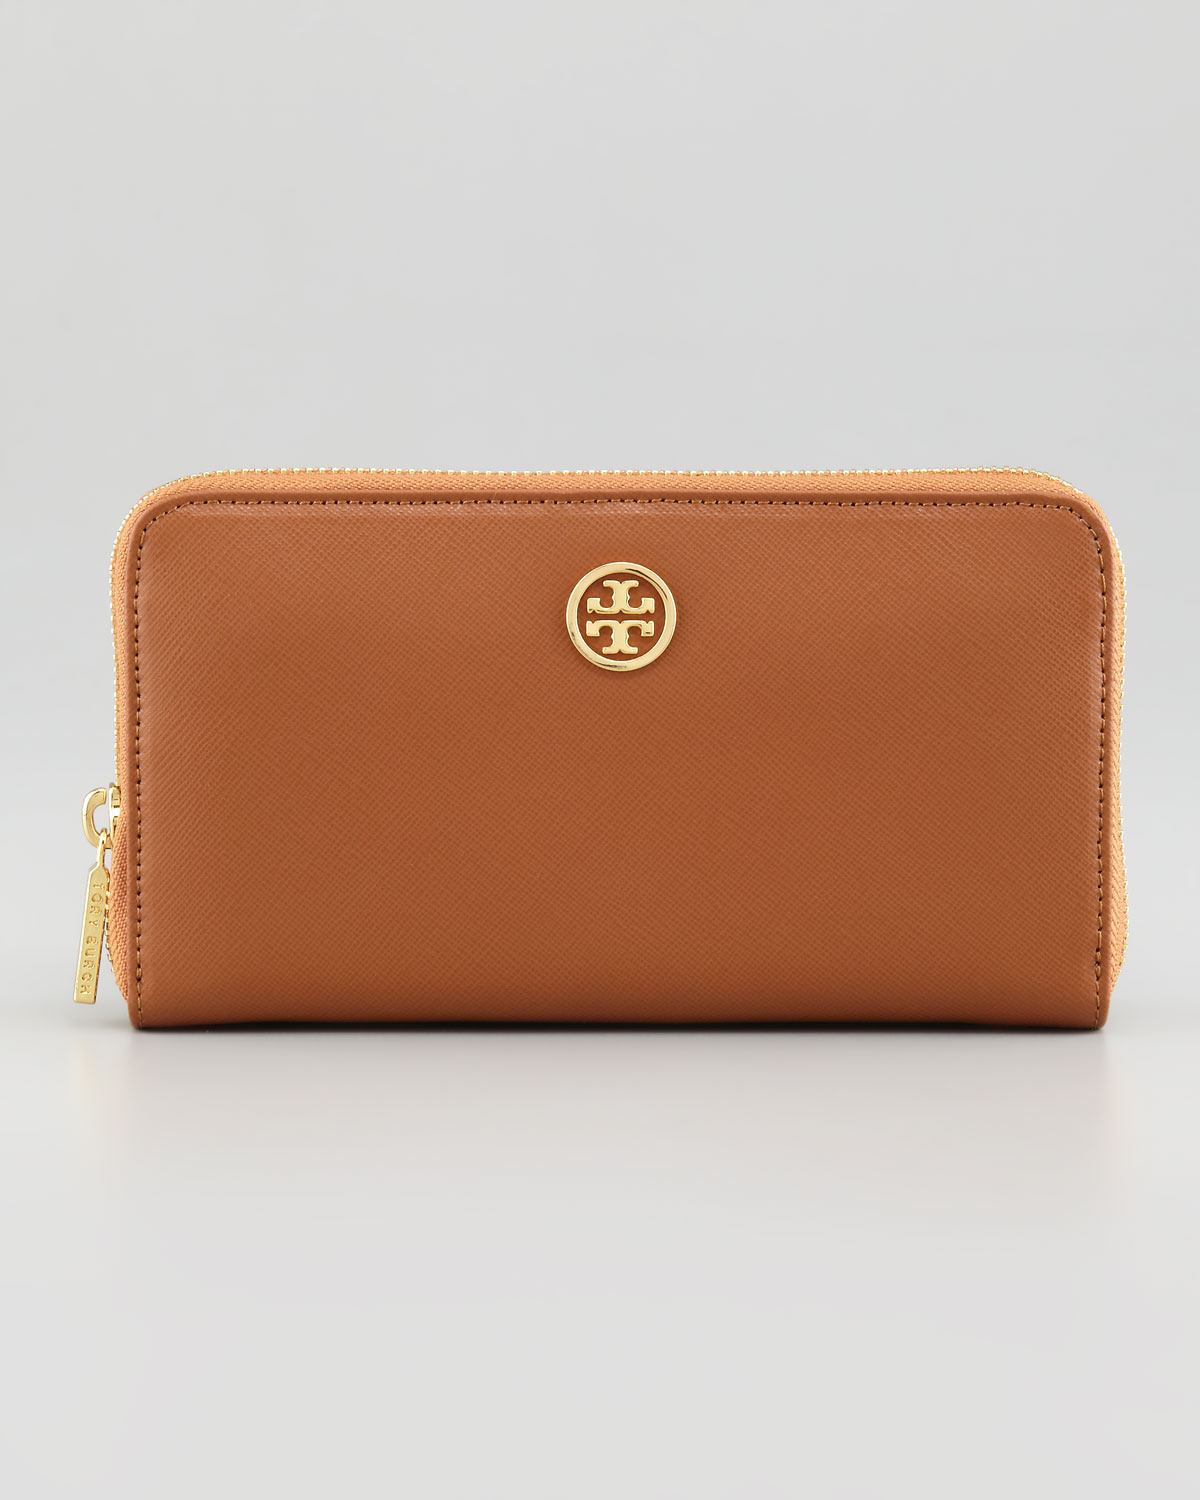 One main Tory Burch McGraw Flat Wallet Leather Crossbody in Black Shop Our Huge Selection · Explore Amazon Devices · Fast Shipping · Read Ratings & Reviews.